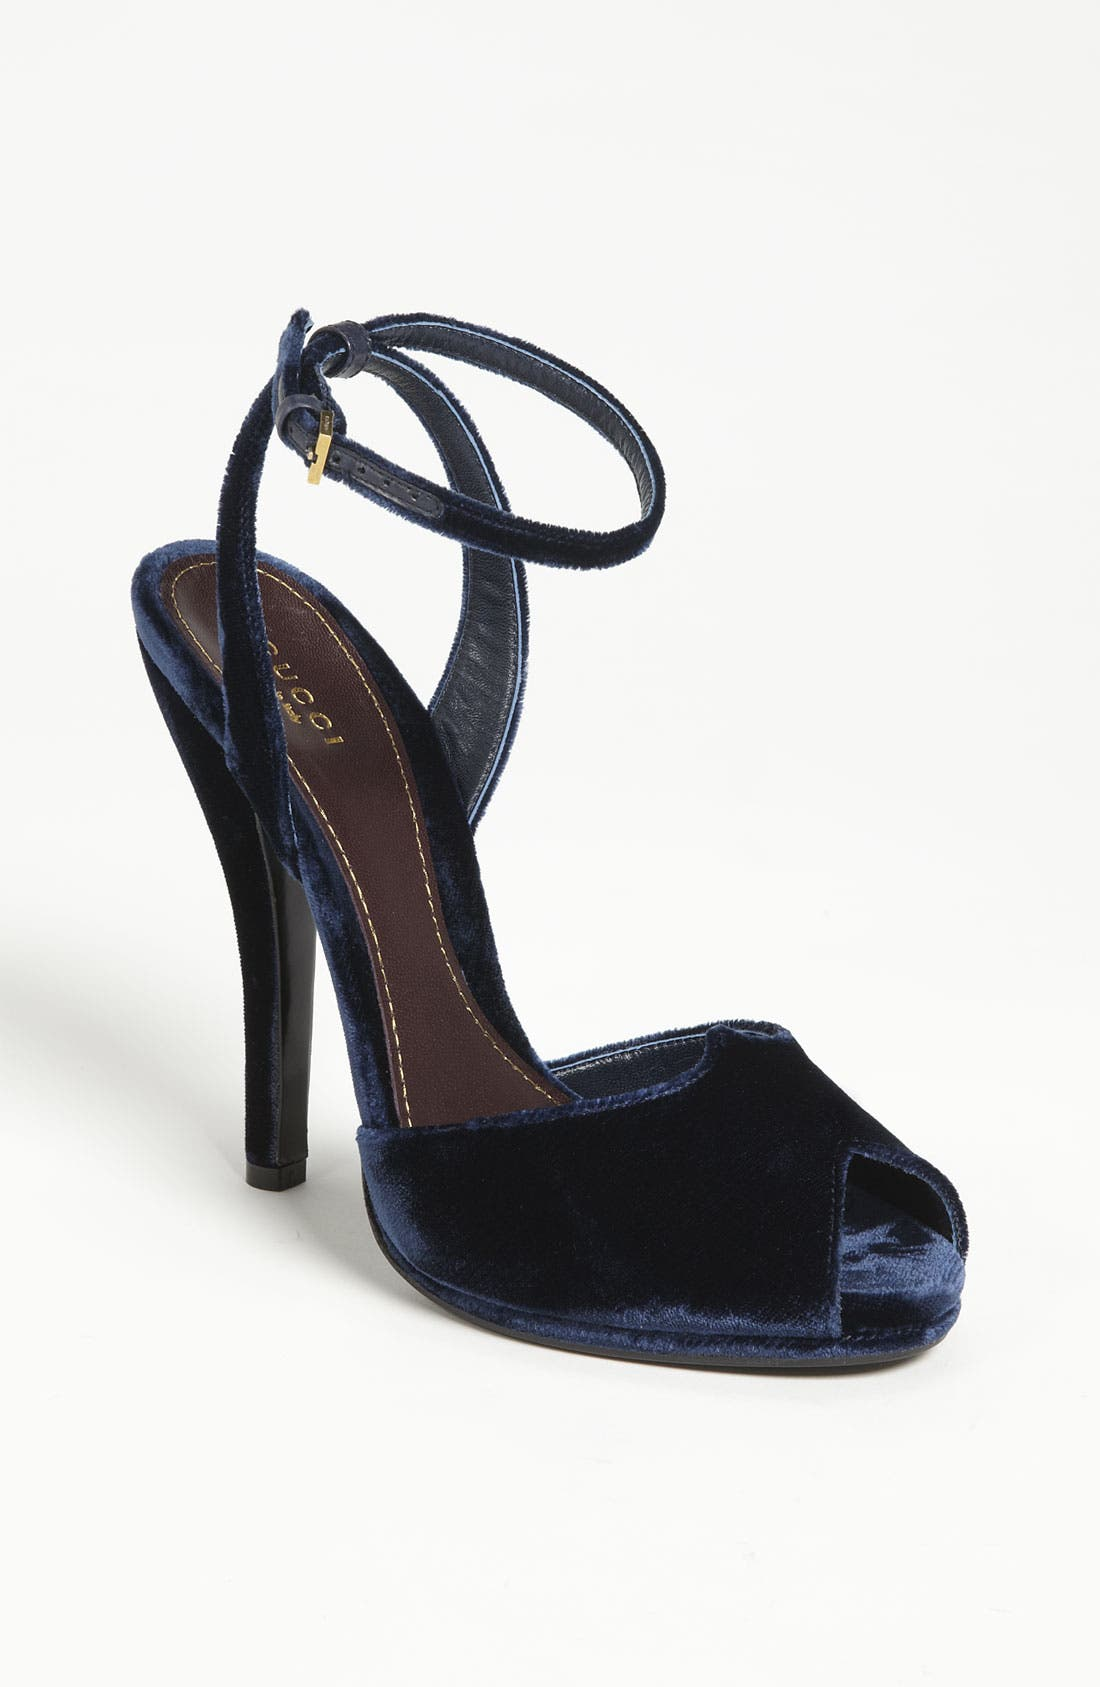 Alternate Image 1 Selected - Gucci Ankle Strap Sandal